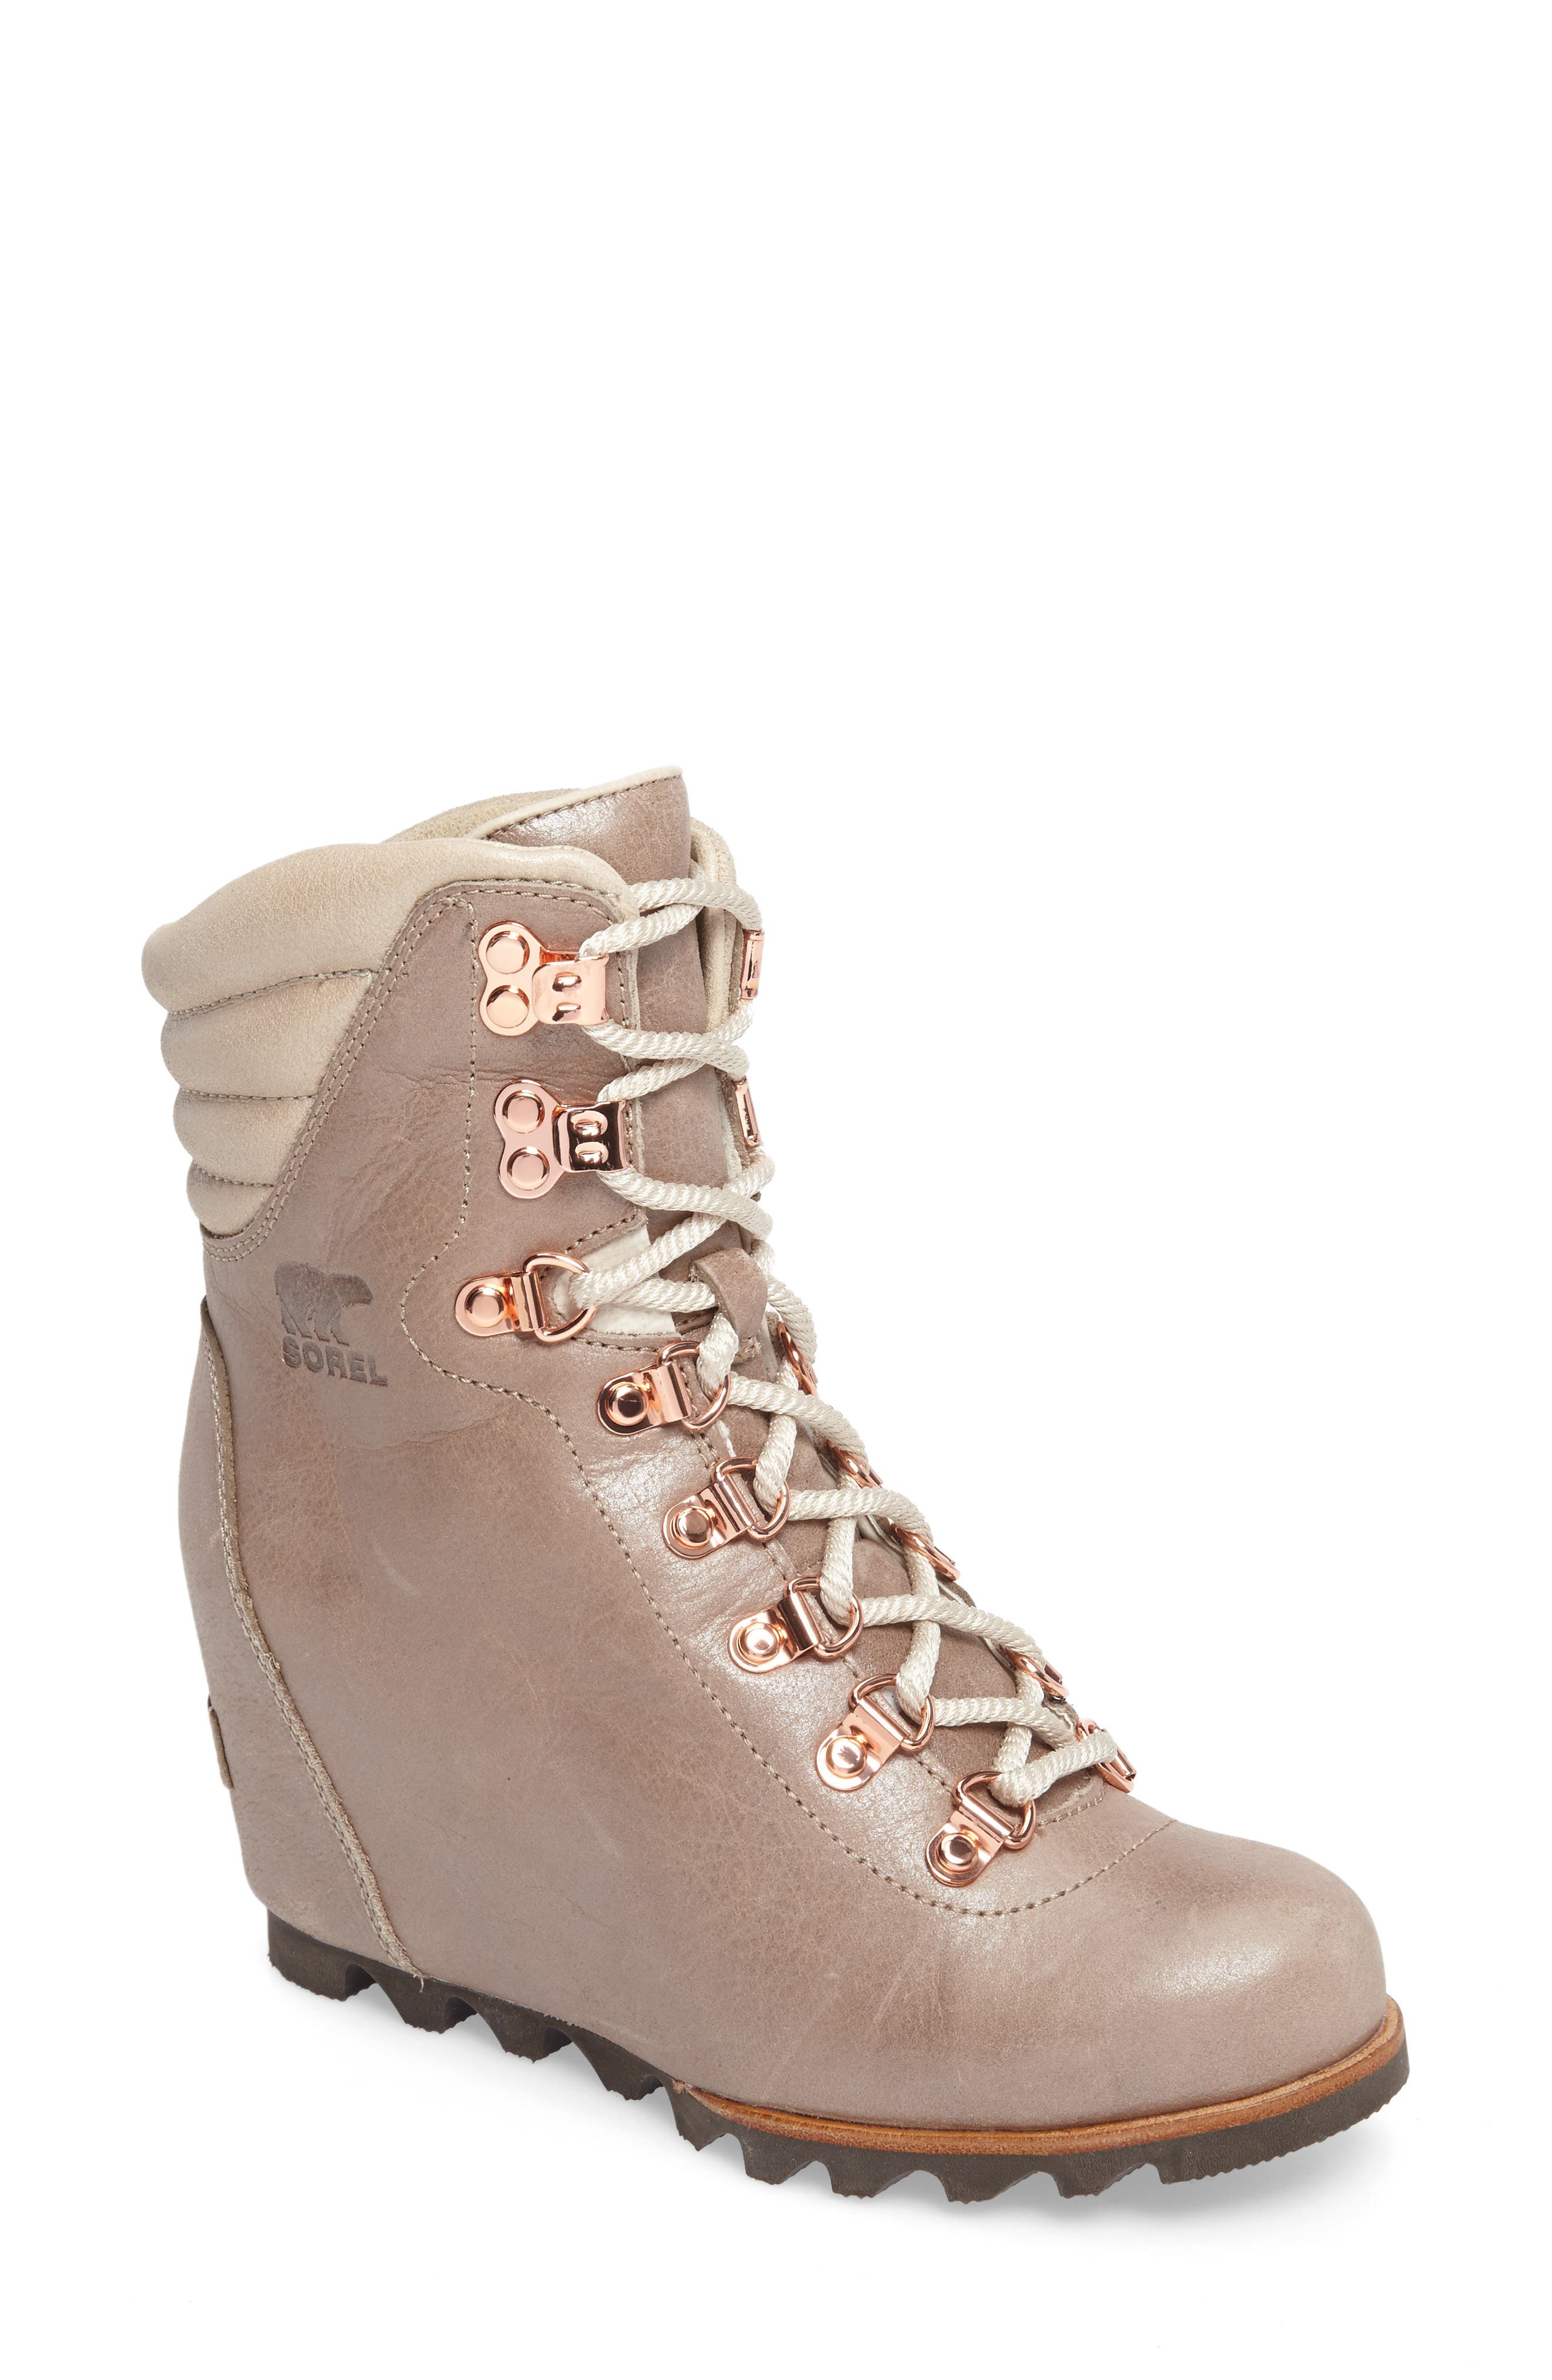 'Conquest' Waterproof Wedge Boot,                             Main thumbnail 5, color,